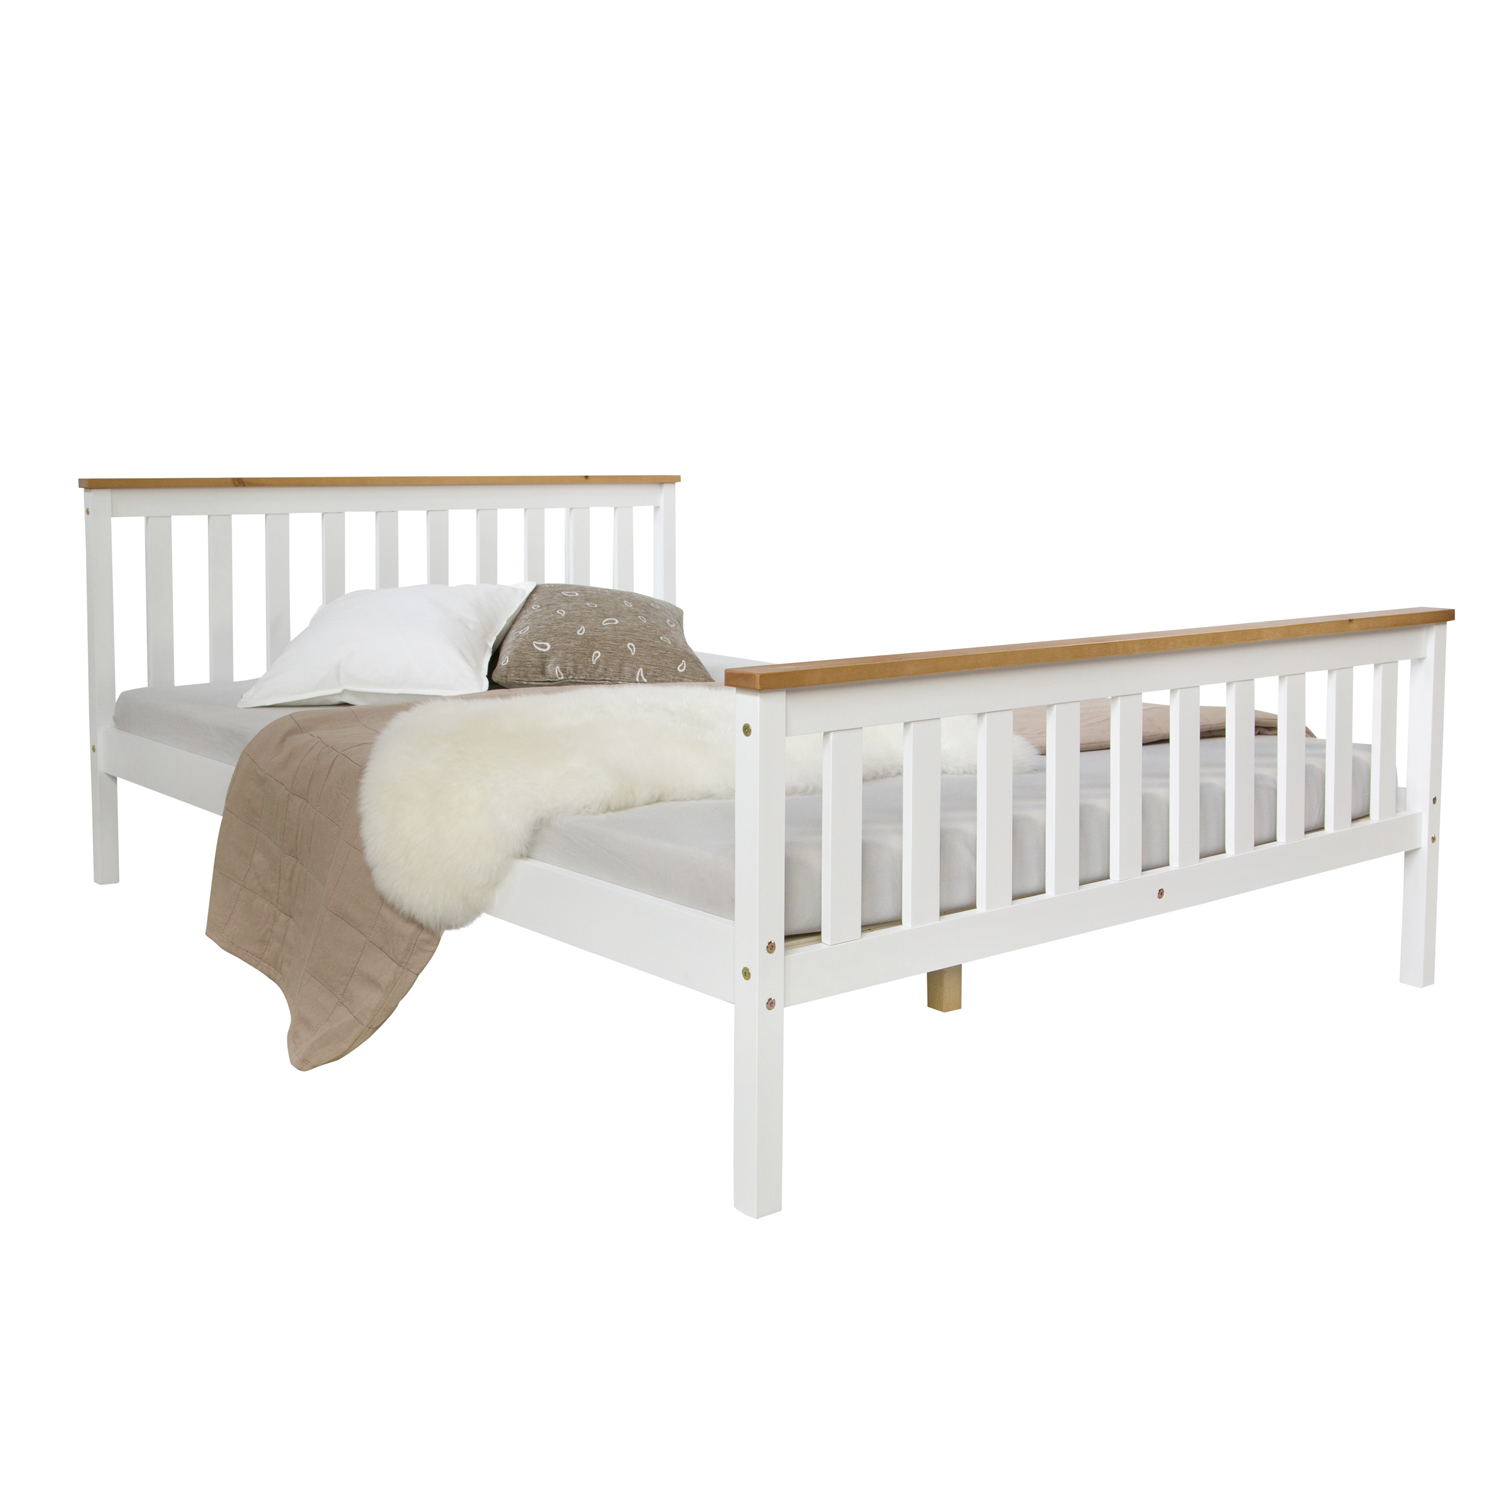 Futonbett 140x200 Weiß 4ft Small Double Bed Solid Pine Frame White Brown